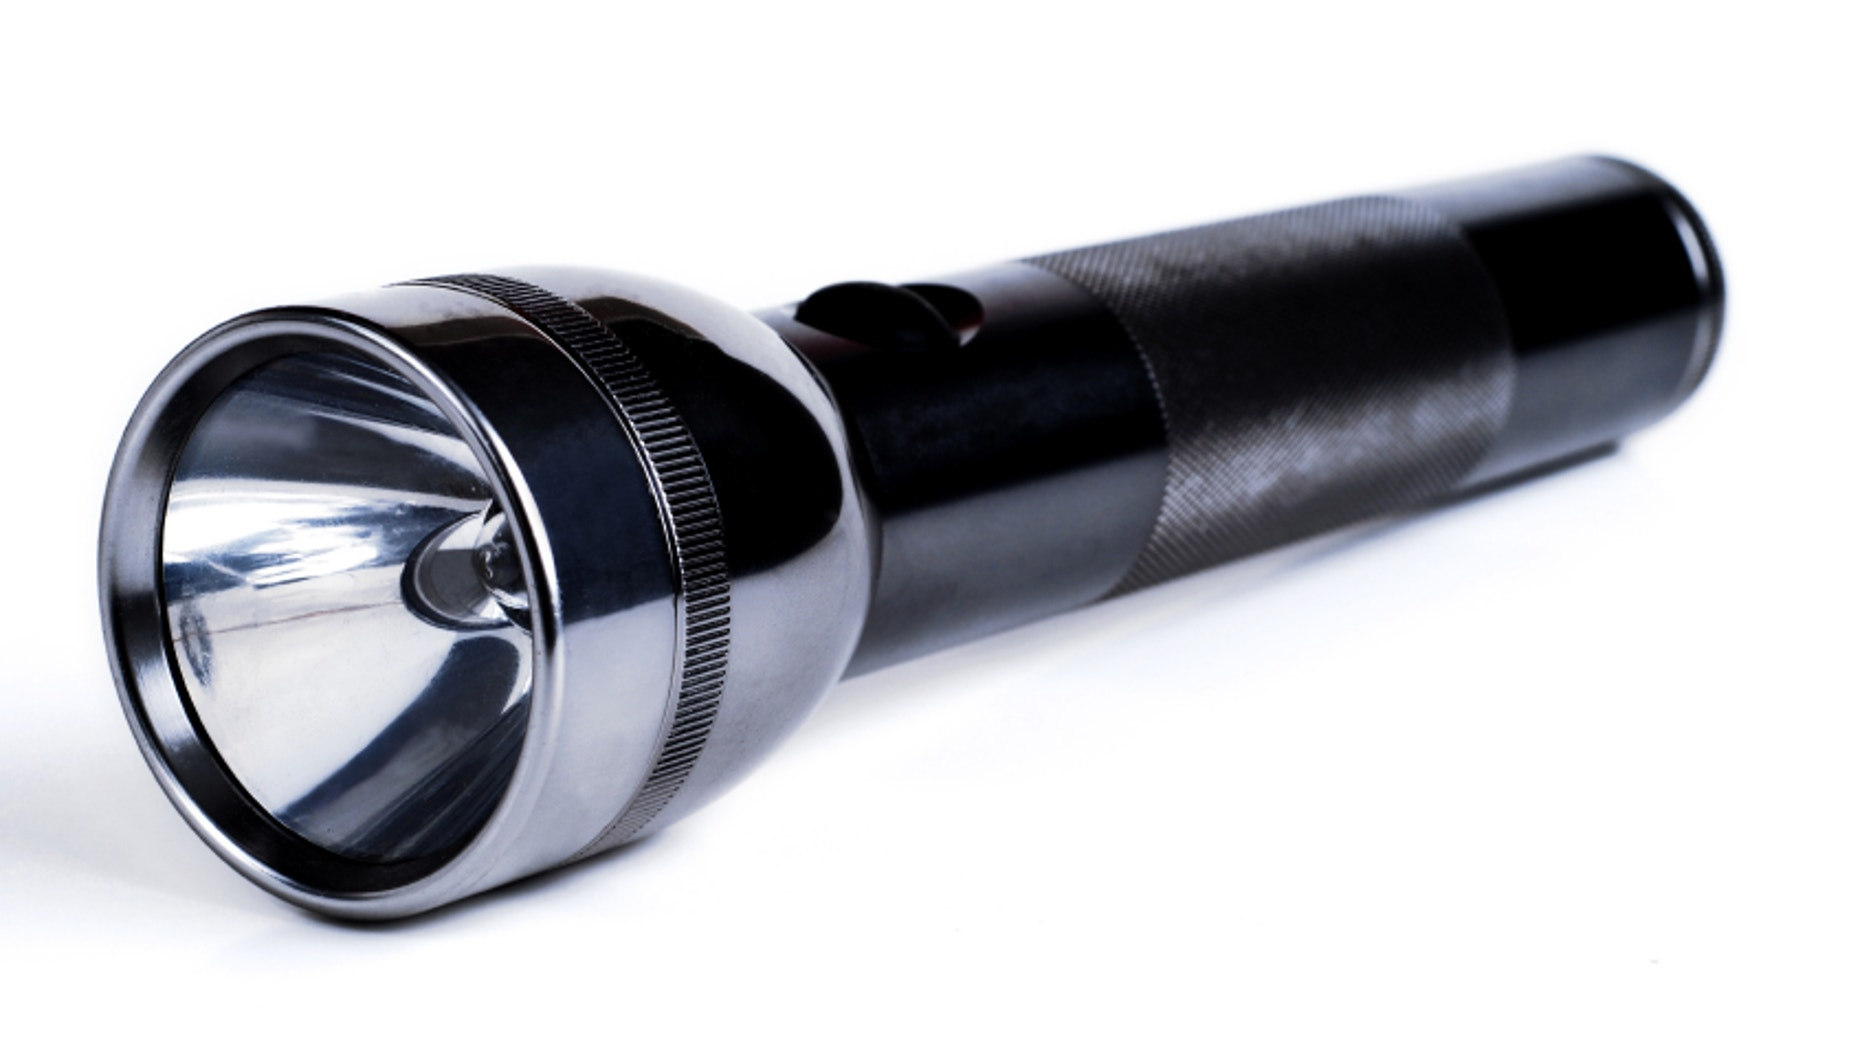 stainless 2 cell flashlight on white